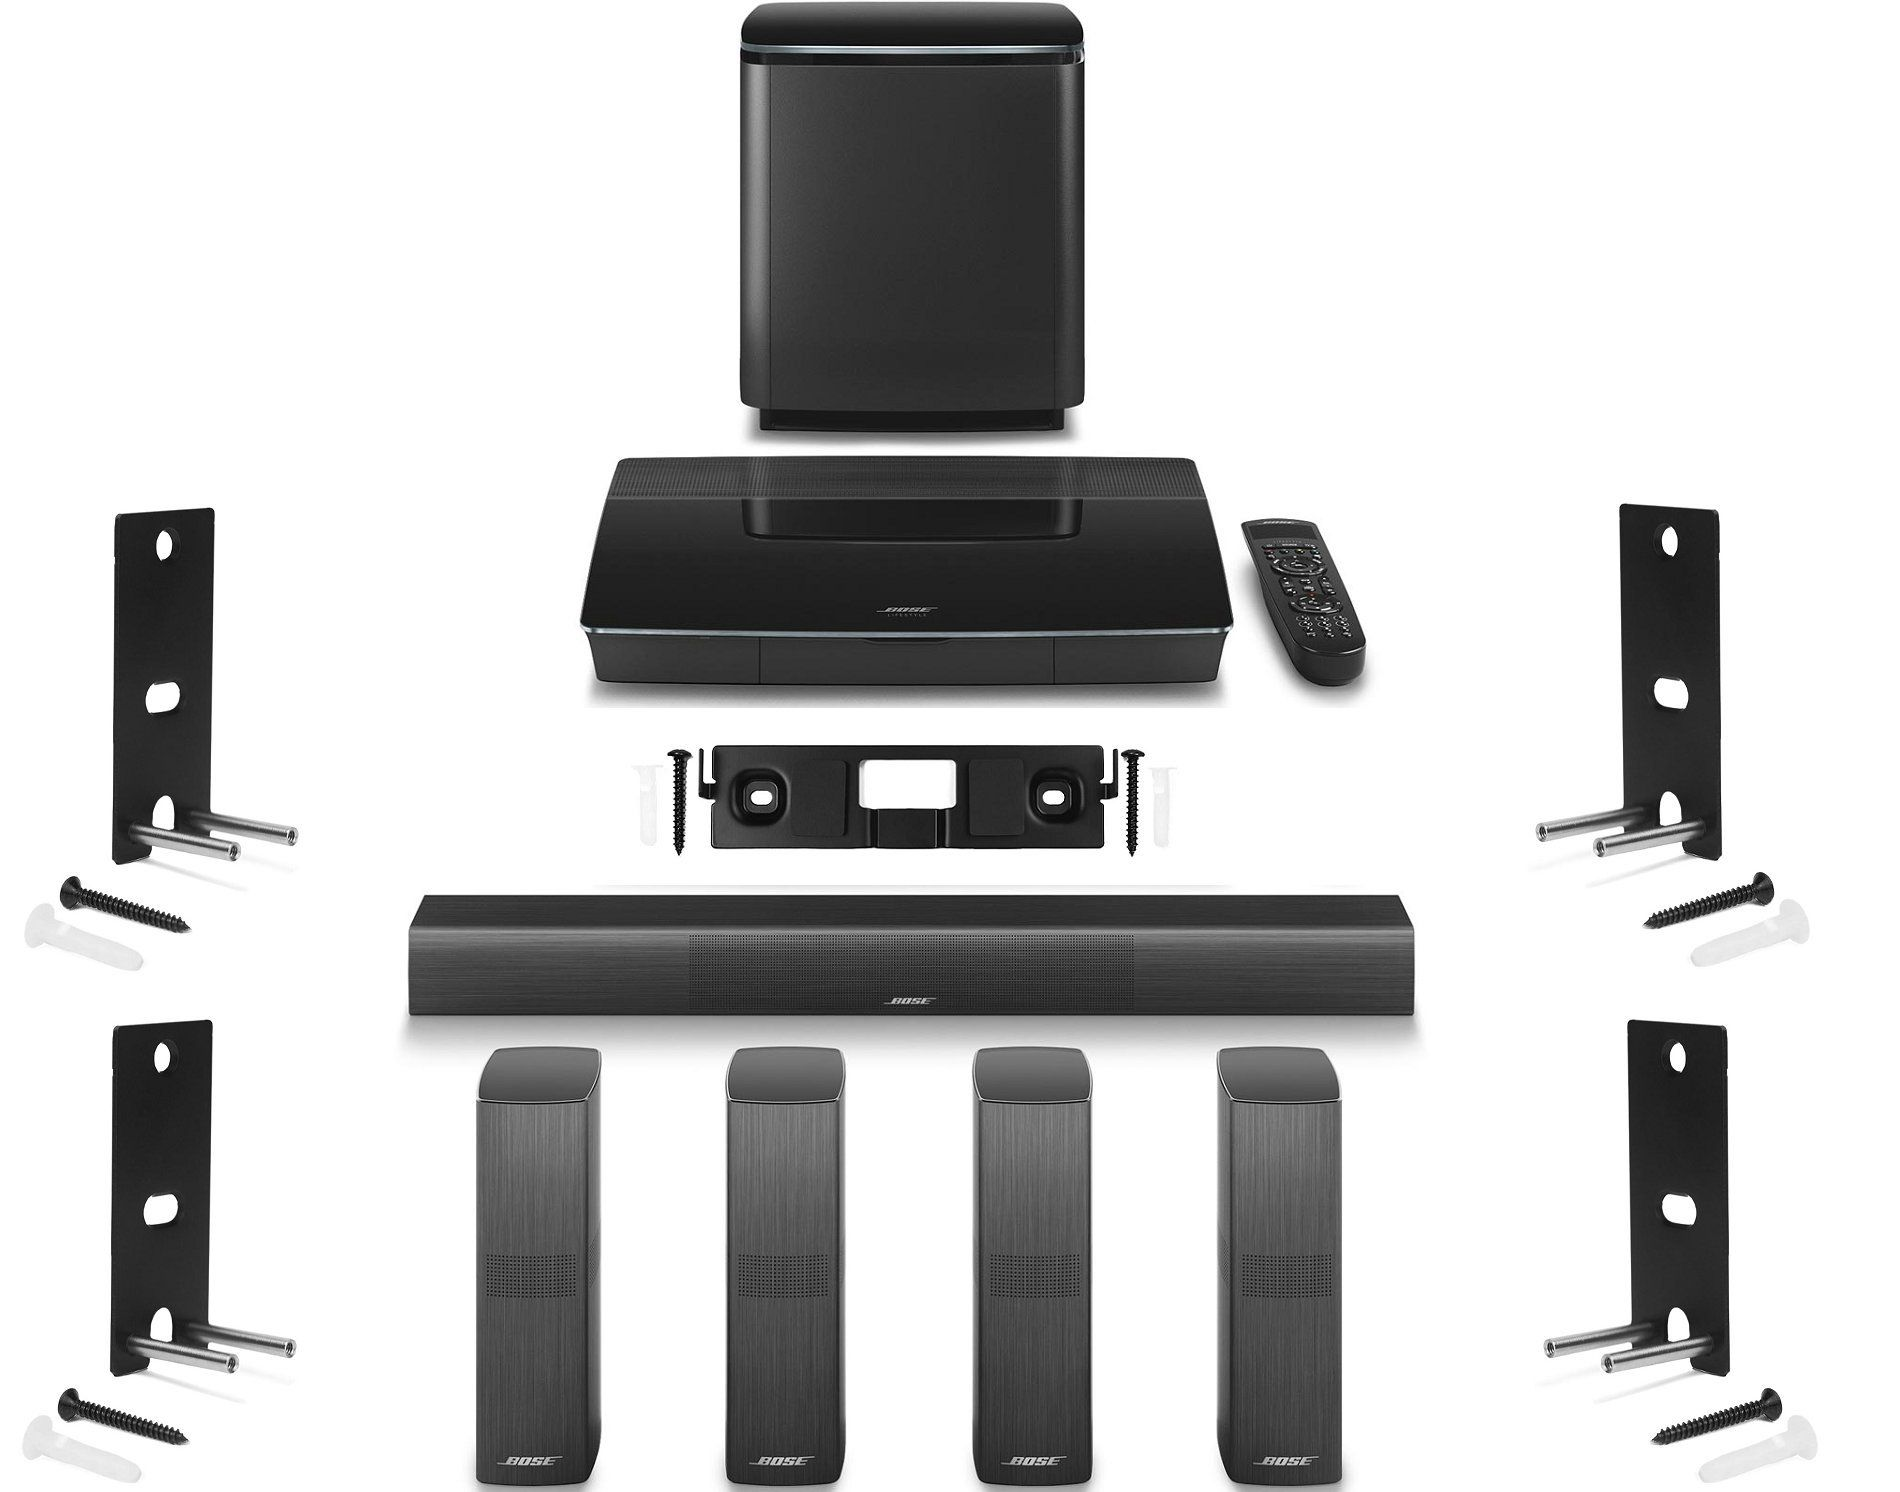 Bose soundtouch 130 home theater system black 738484 1100 b amp h - Bose Lifestyle 650 Home Entertainment System With Wall Brackets 1 Omnijewel Center Channel Bracket